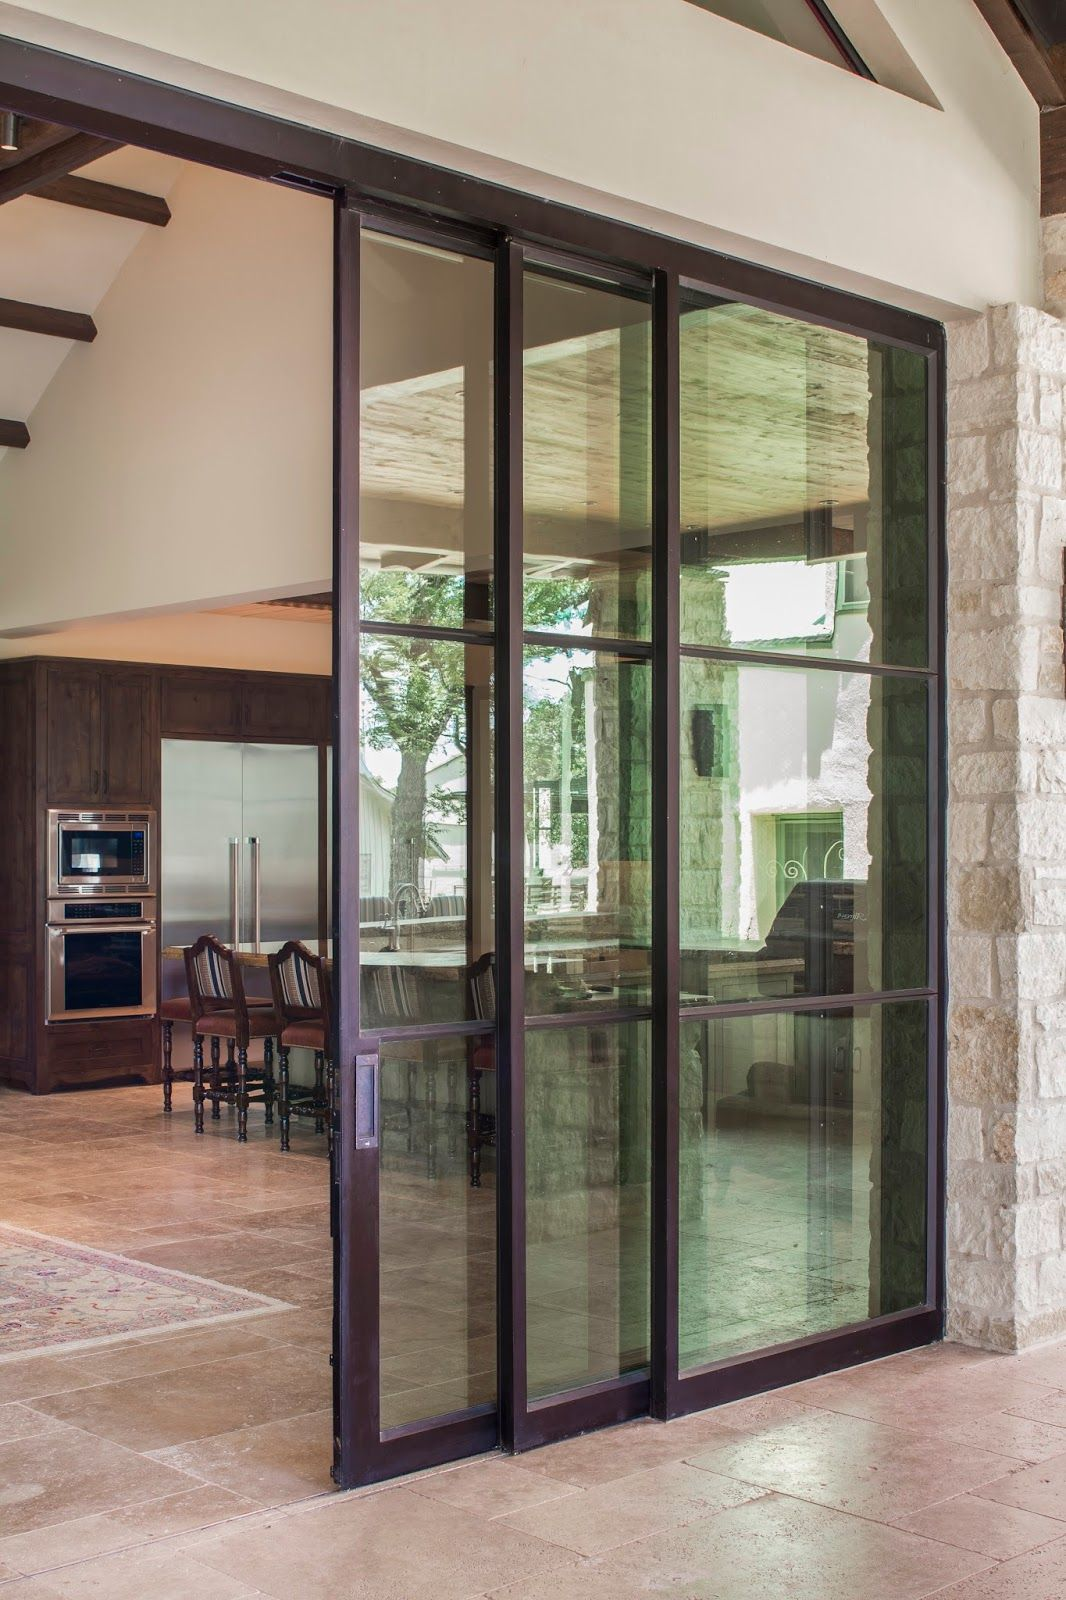 Portella Custom Steel Doors and Windows & Portella Custom Steel Doors and Windows | Doors by Ron Arder ...